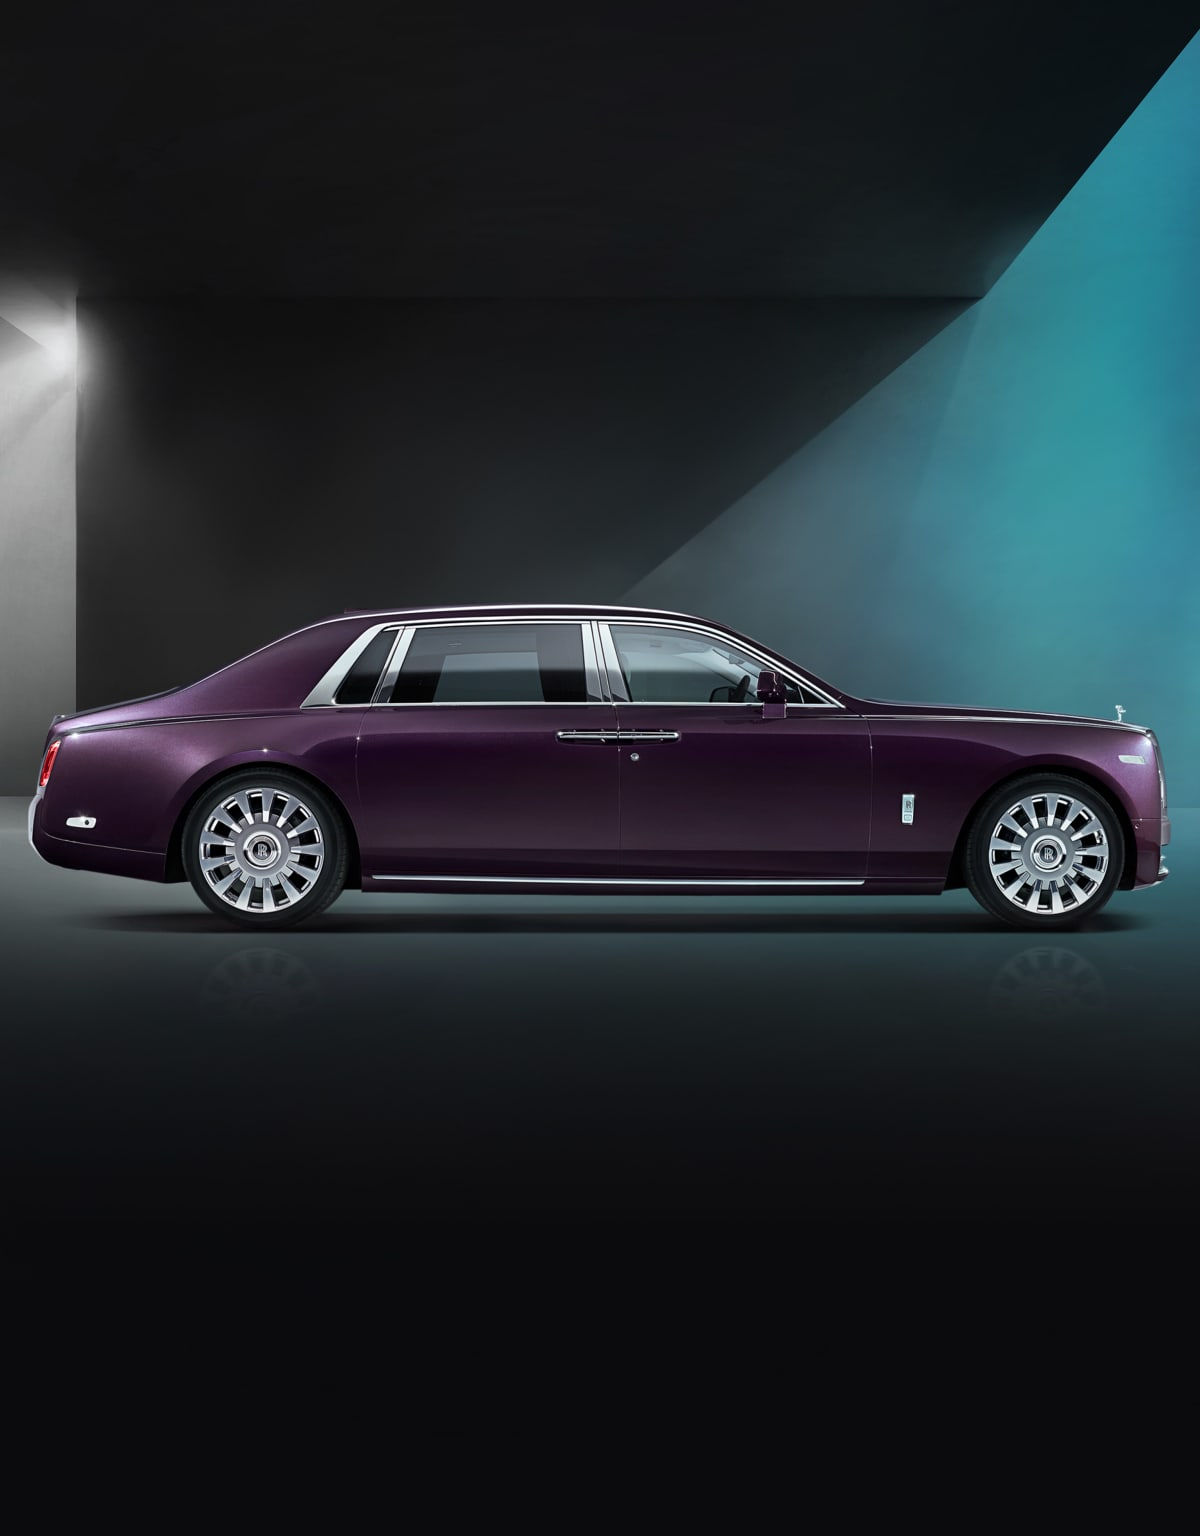 Side profile exterior of Rolls-Royce Phantom Extended Wheel Base motor car.